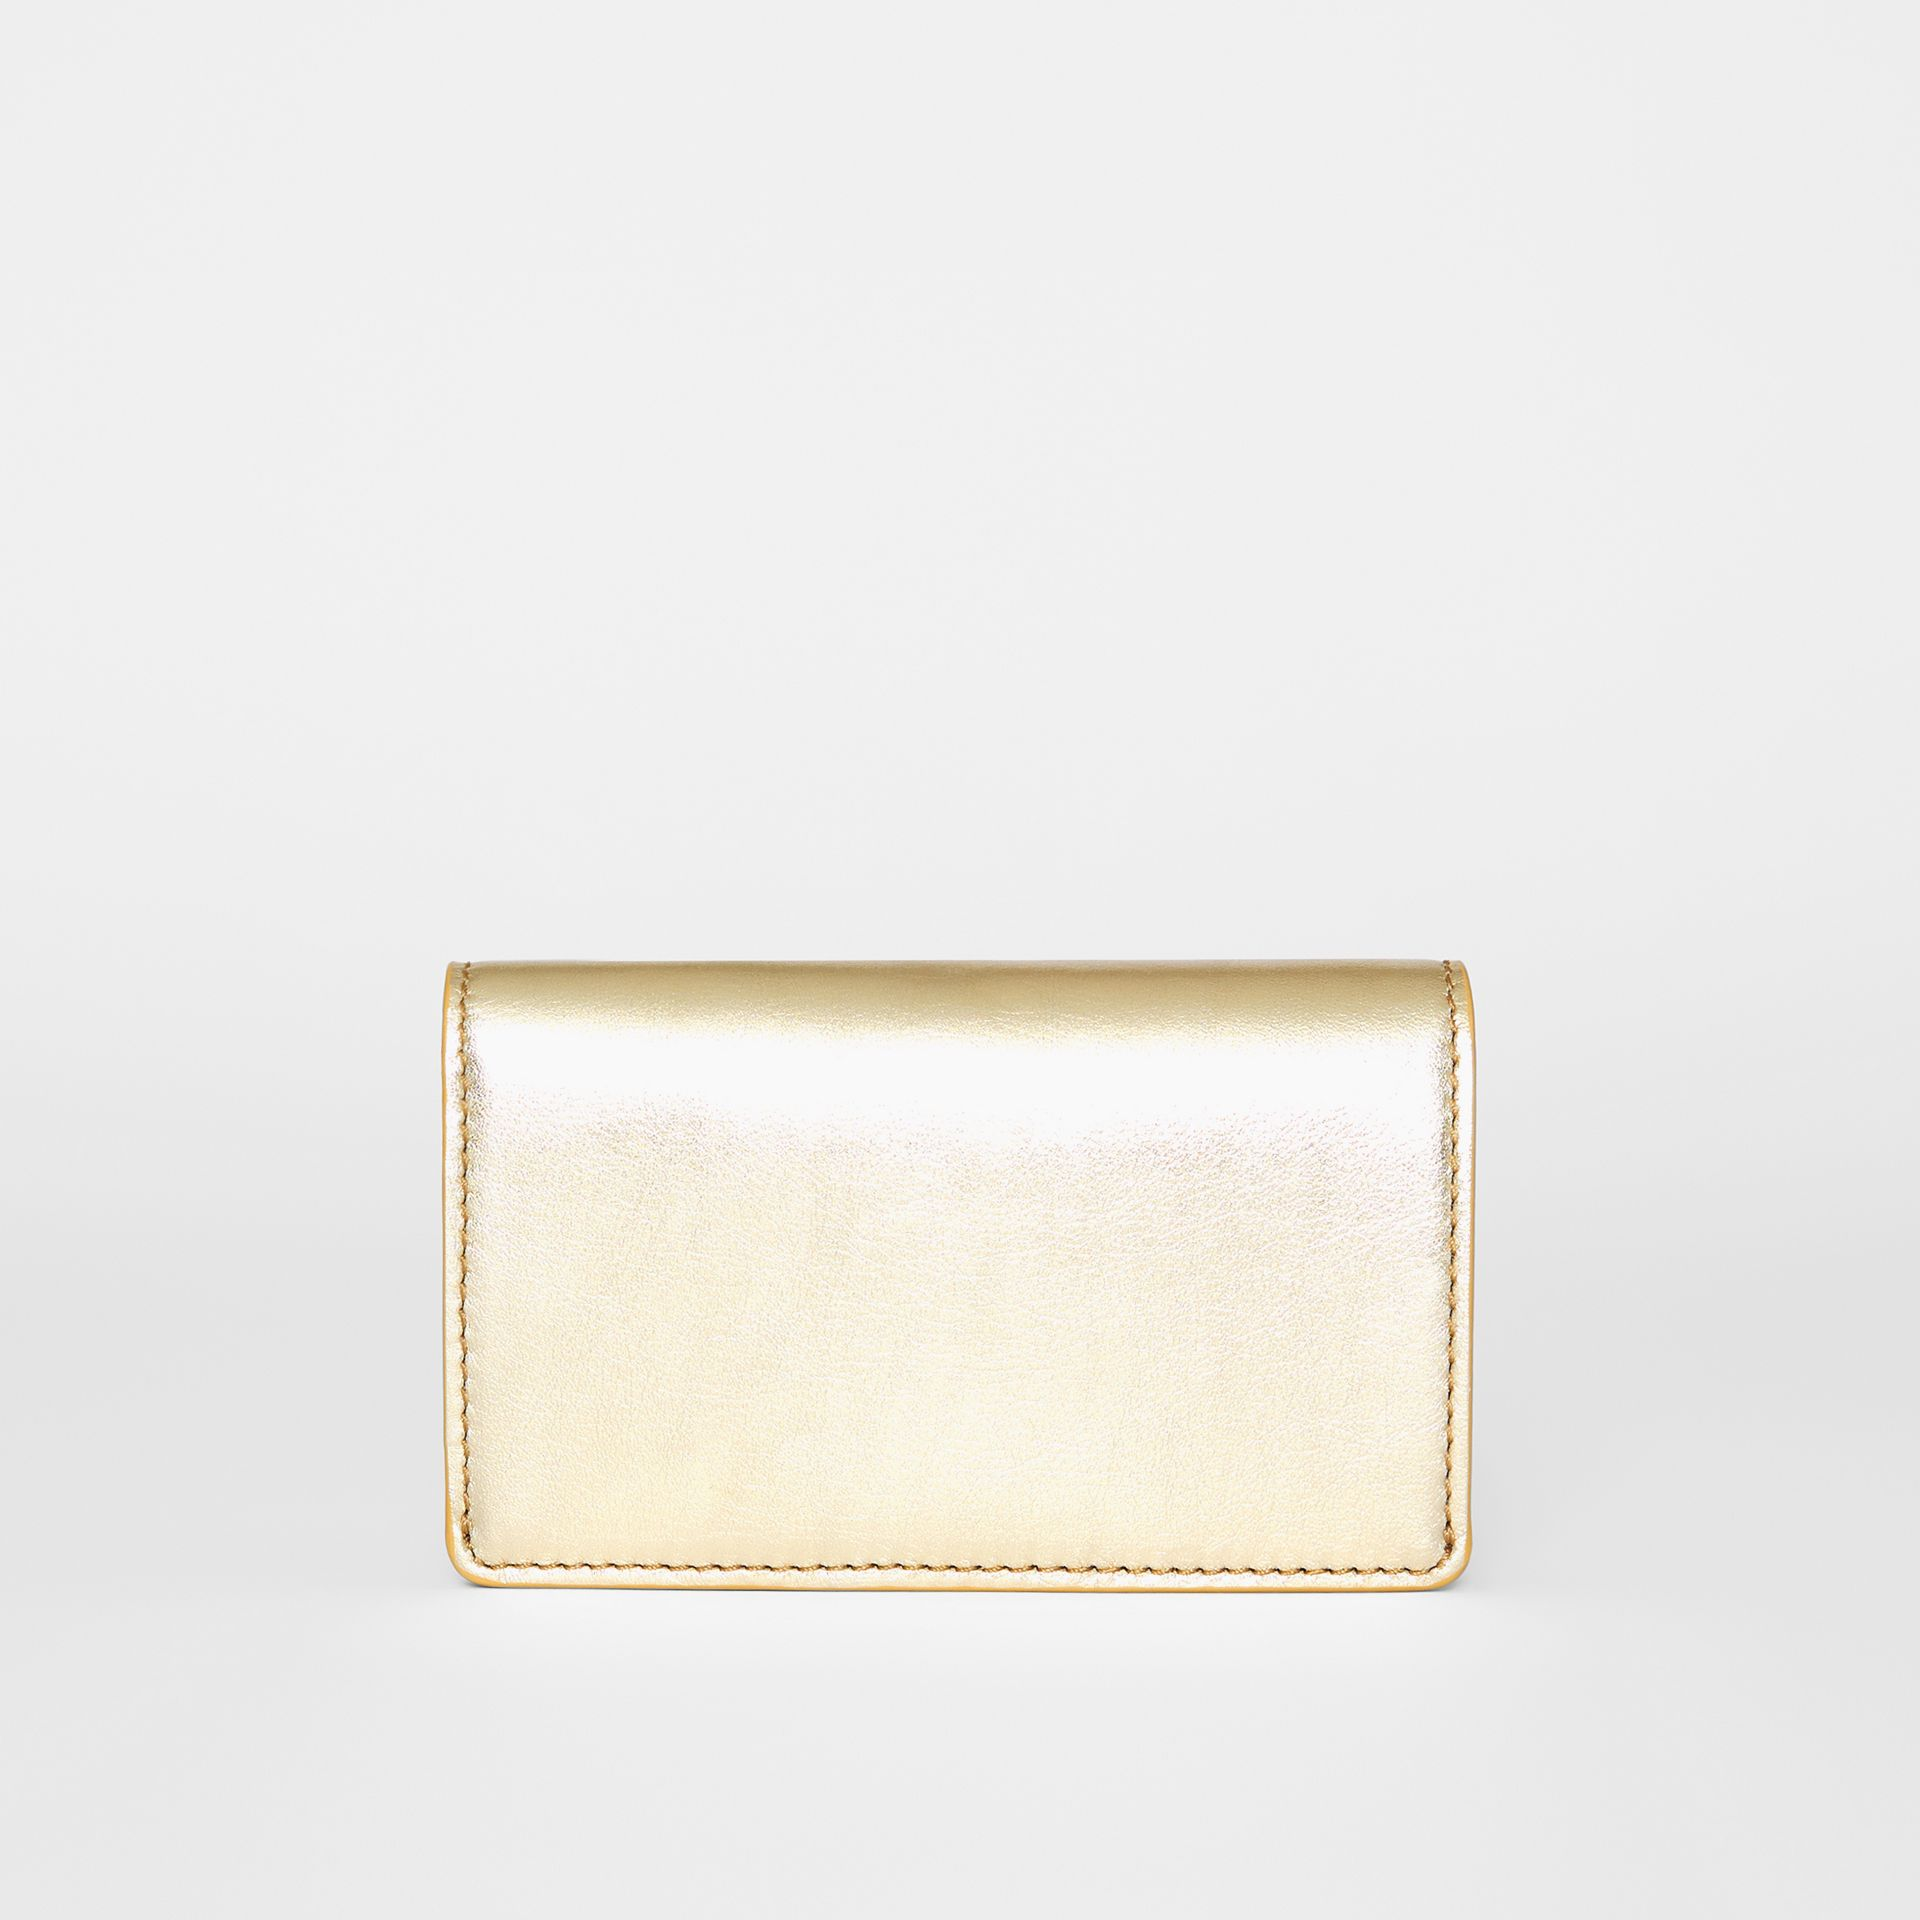 Small Embossed Crest Metallic Leather Wallet in Gold - Women | Burberry - gallery image 5